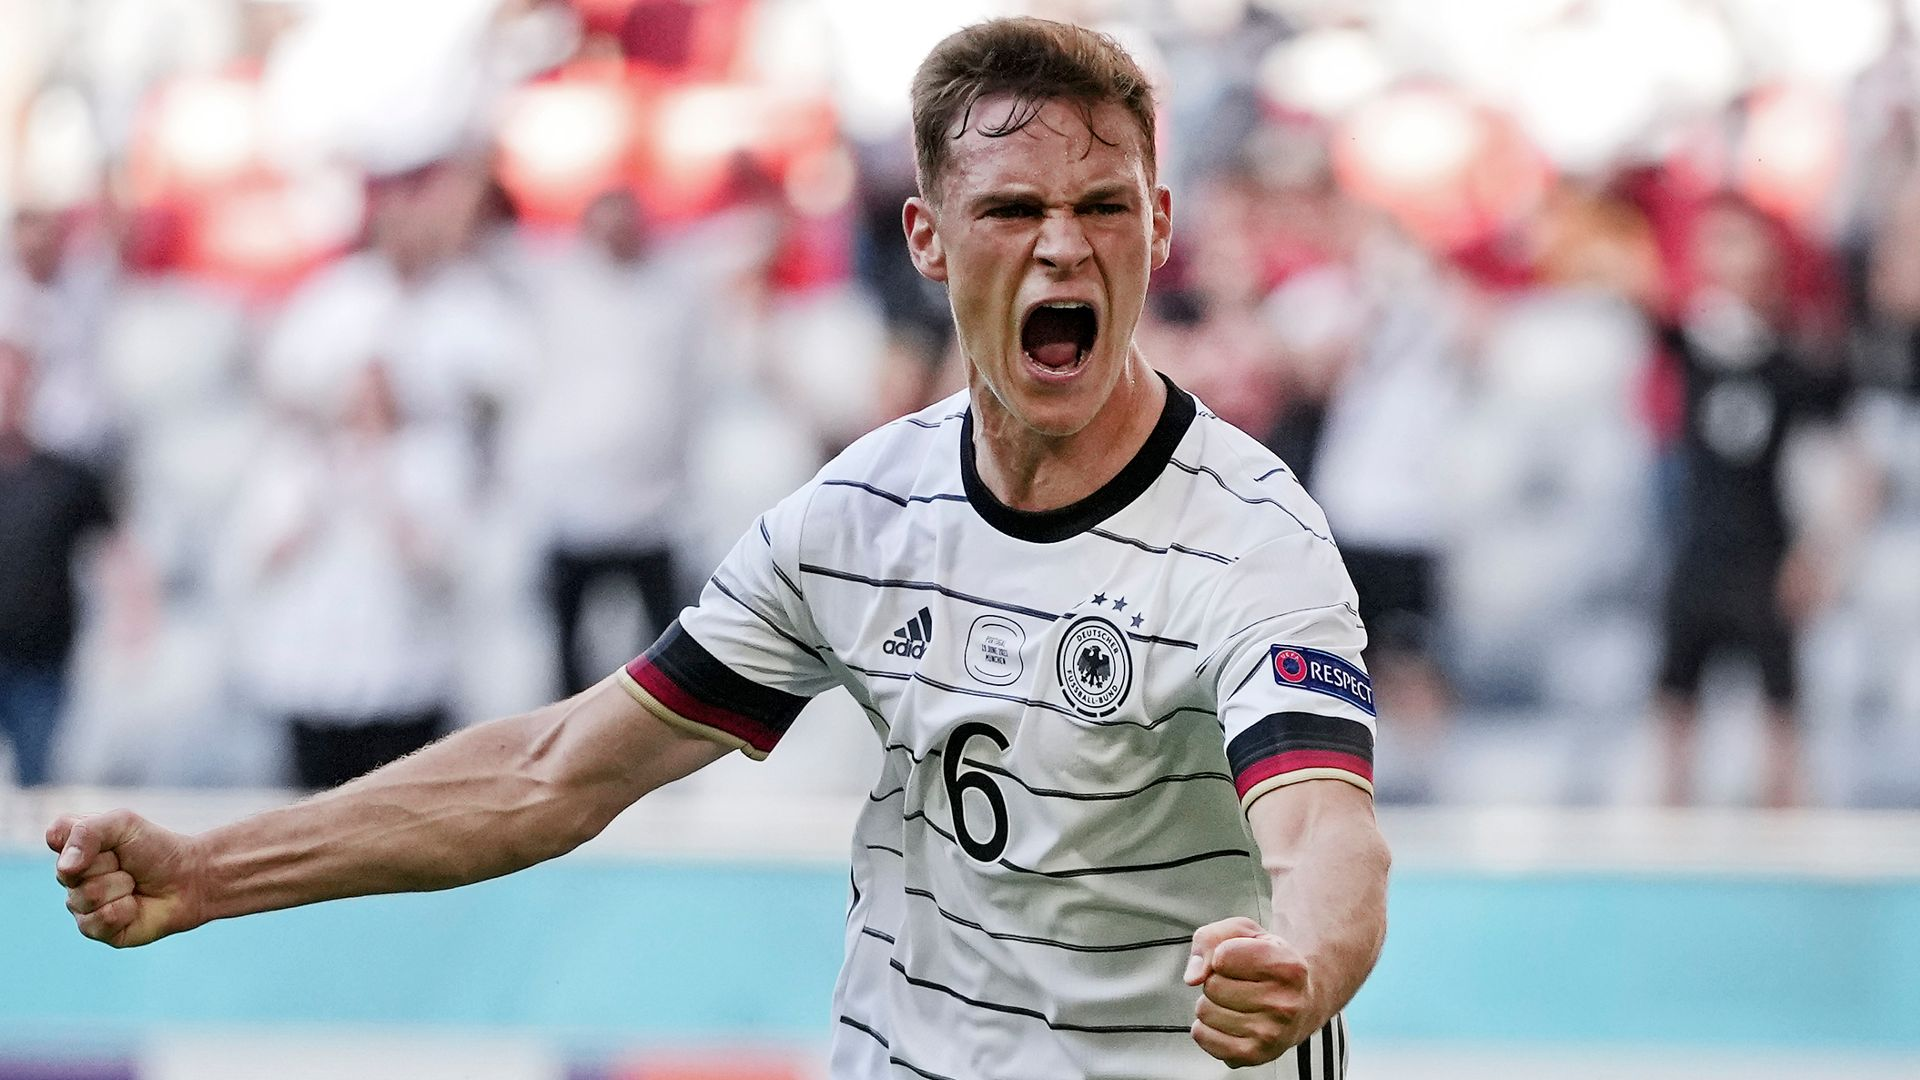 Hits and Misses: Don't underestimate Germany, Spain must improve